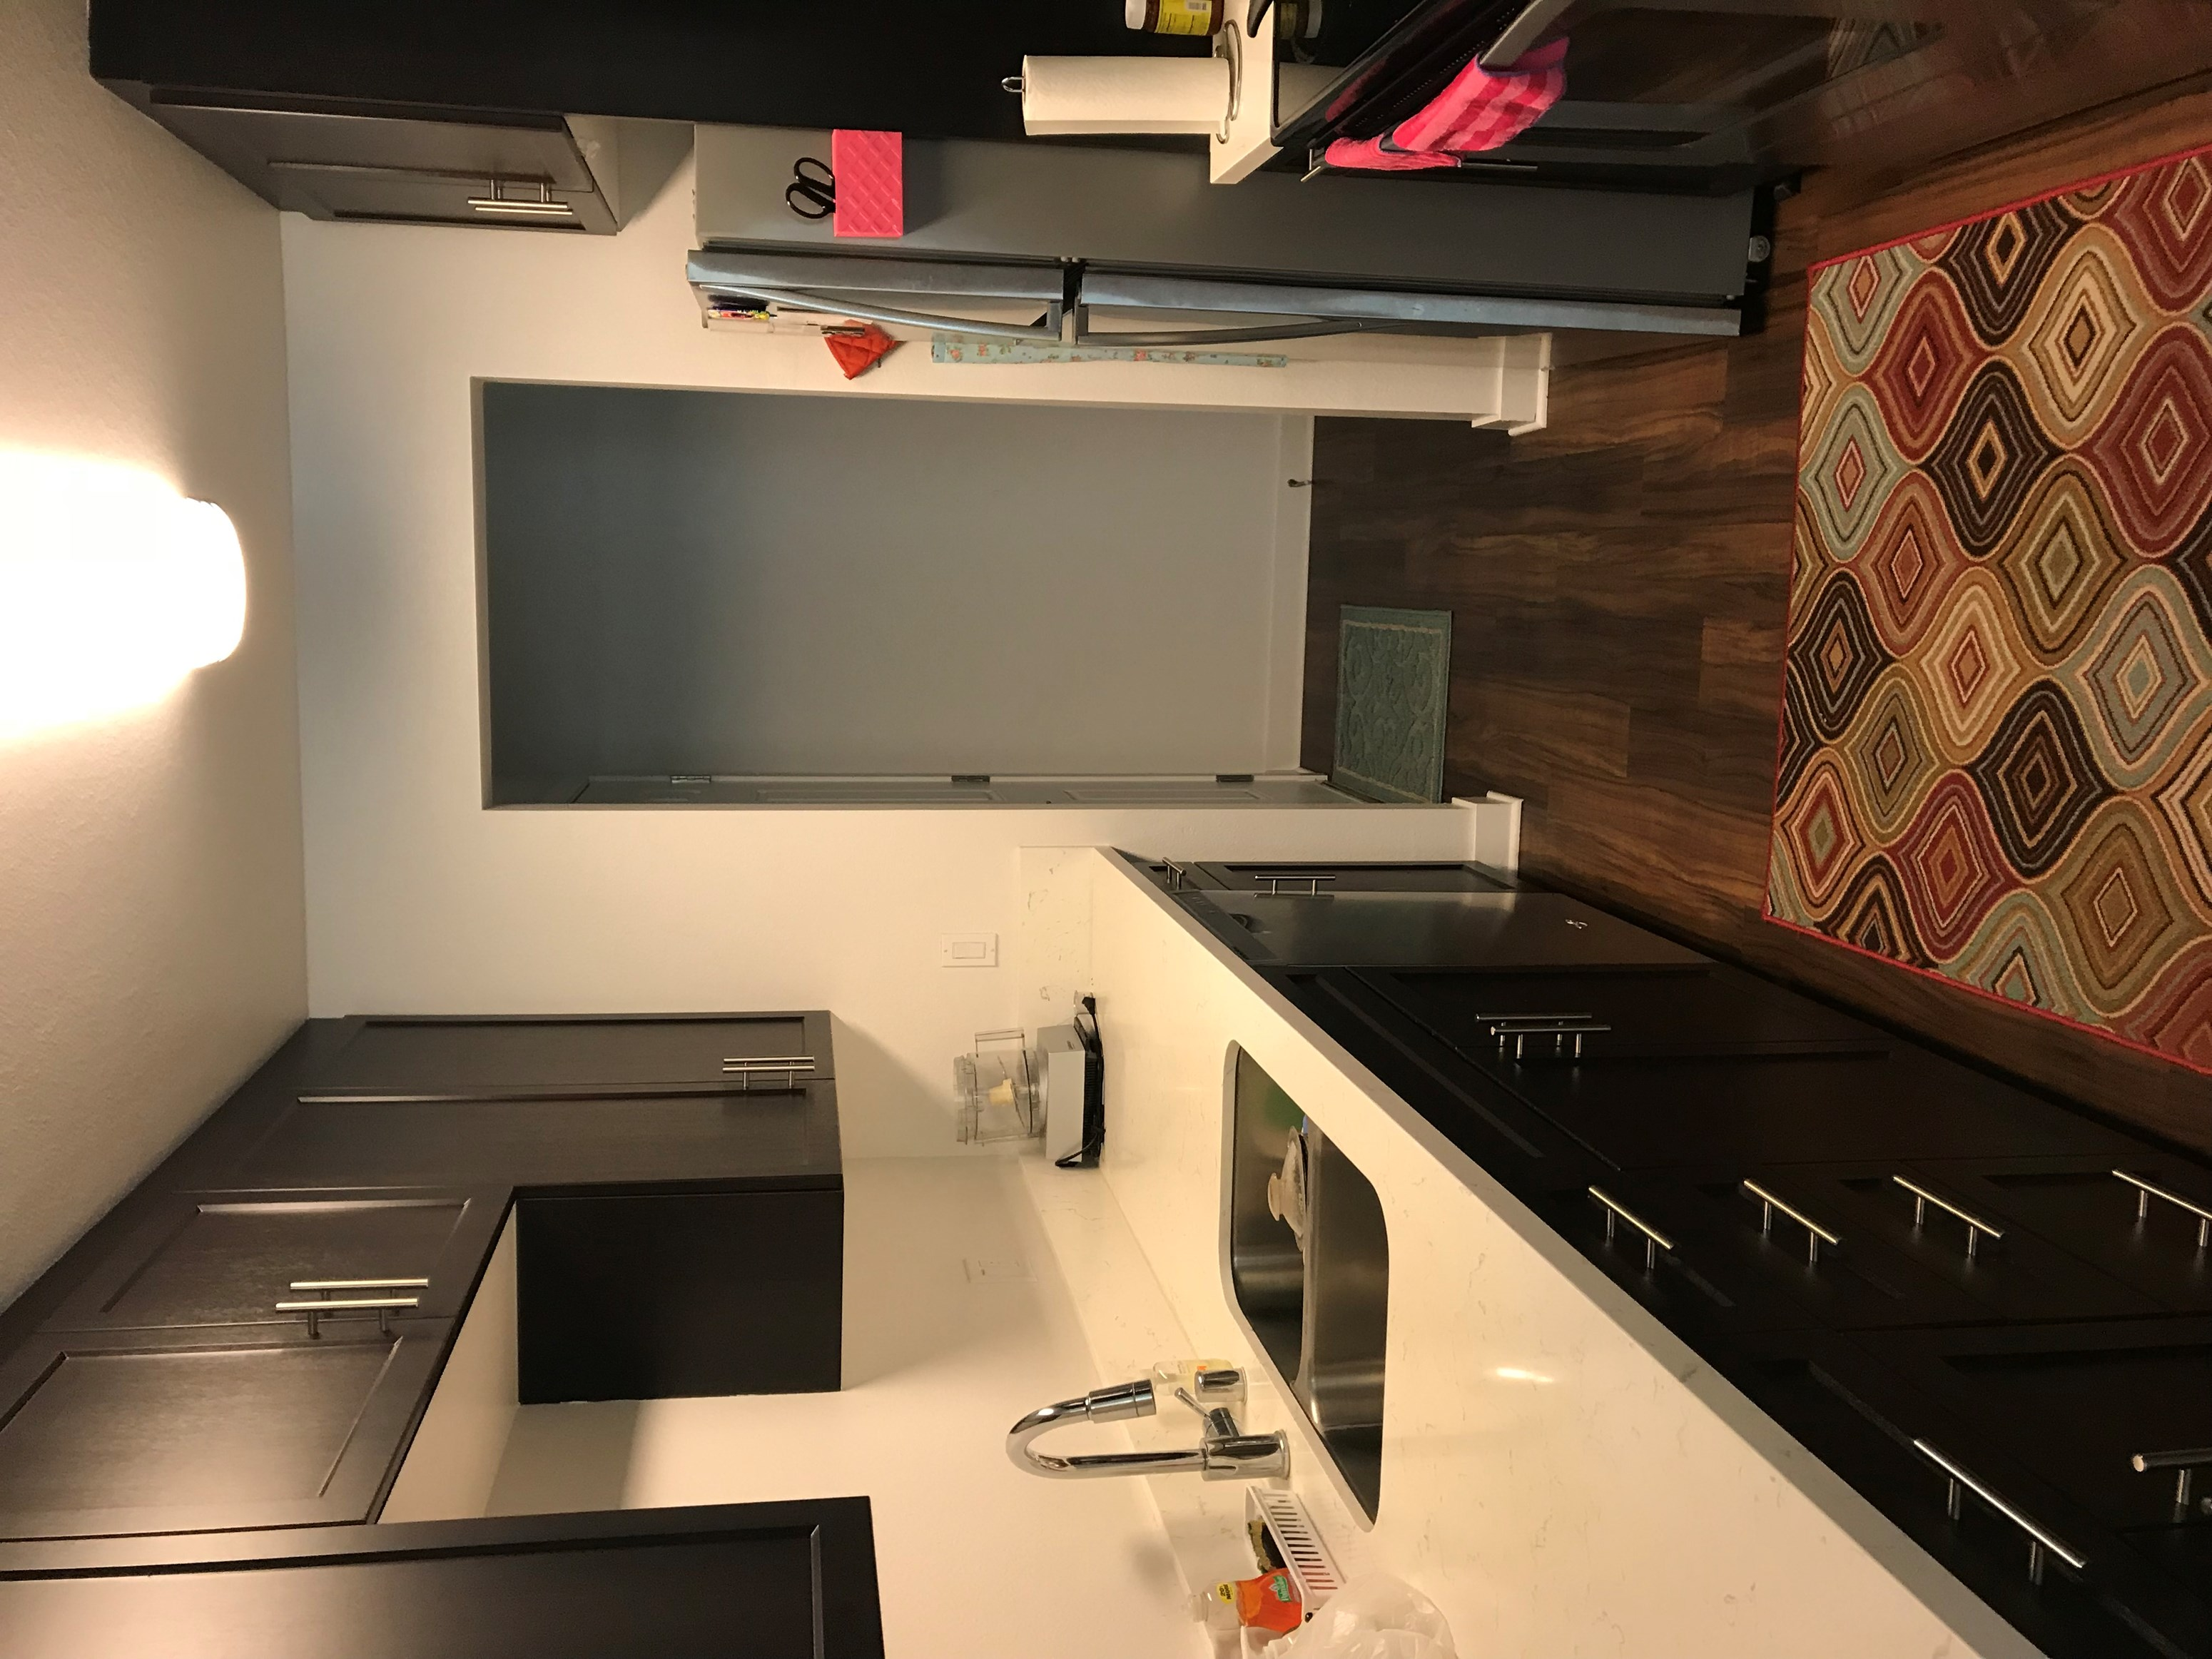 beverly plaza apartments brand new 2 bed 2 bath apartment for rent